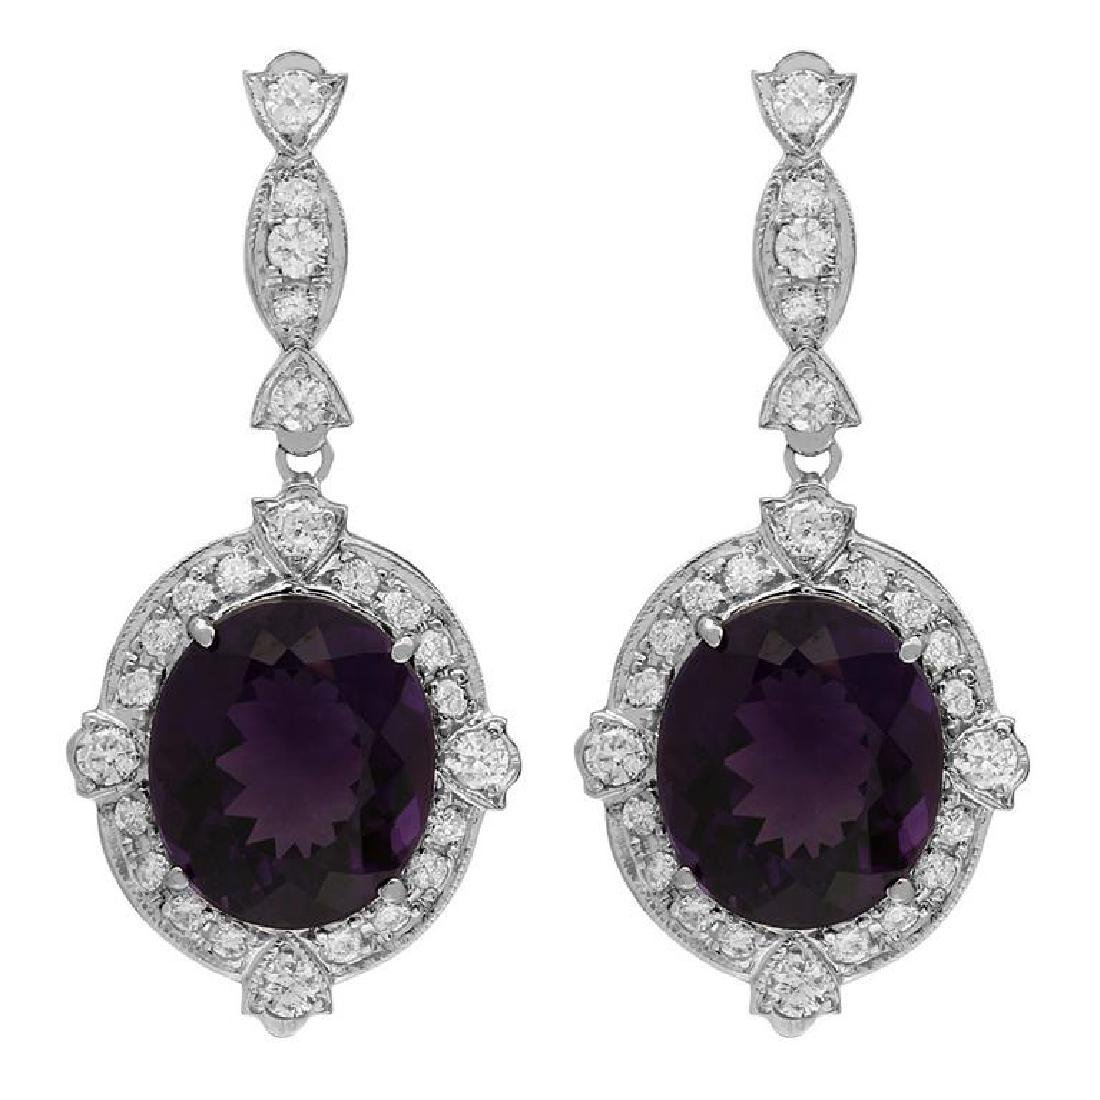 14k White Gold 16.53ct Amethyst 1.83ct Diamond Earrings